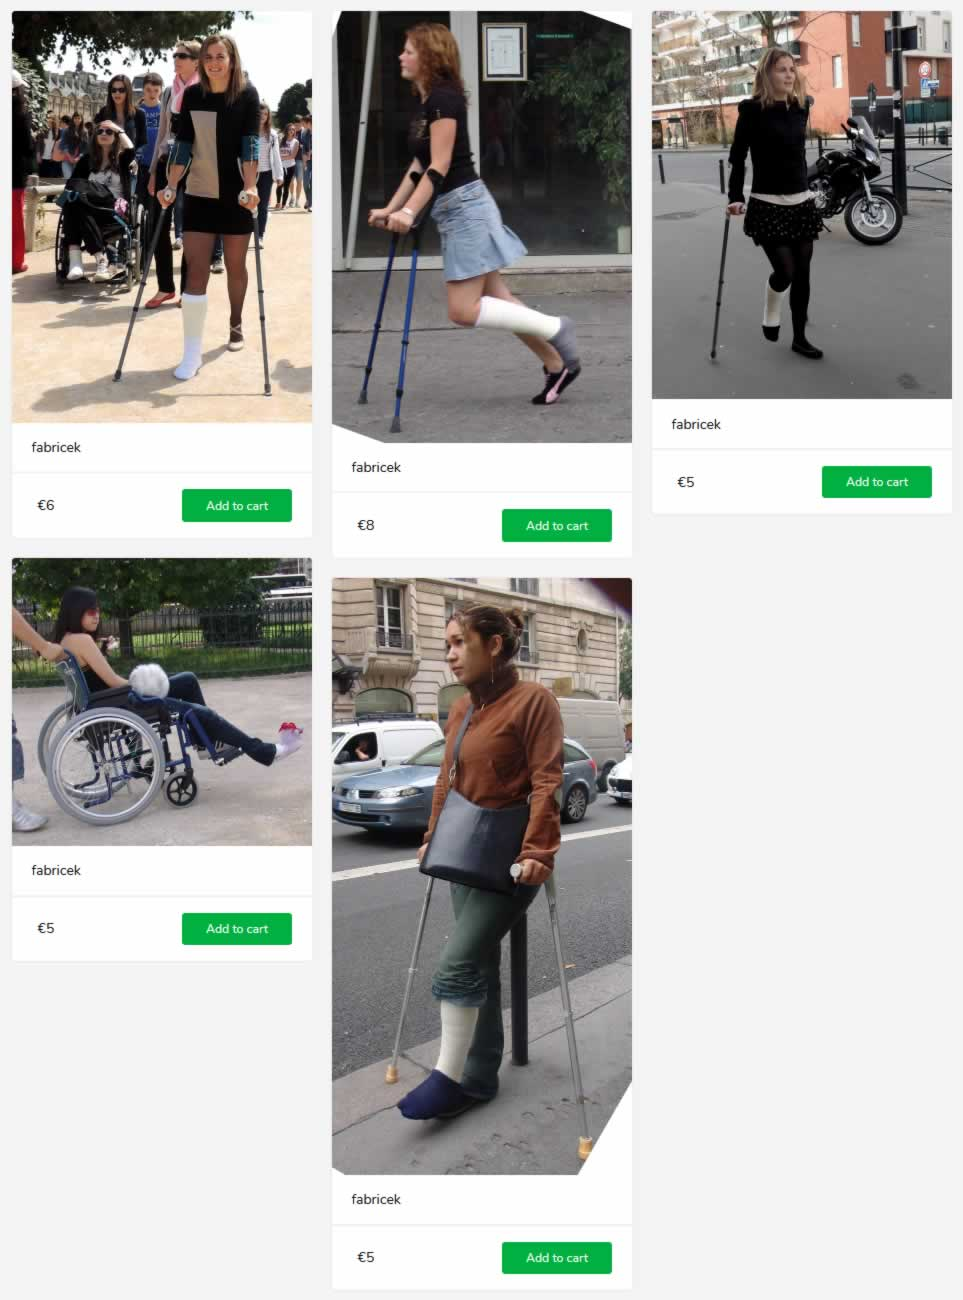 5 new sets (girls in SLC, on crutces, with socks and in wheelchair)